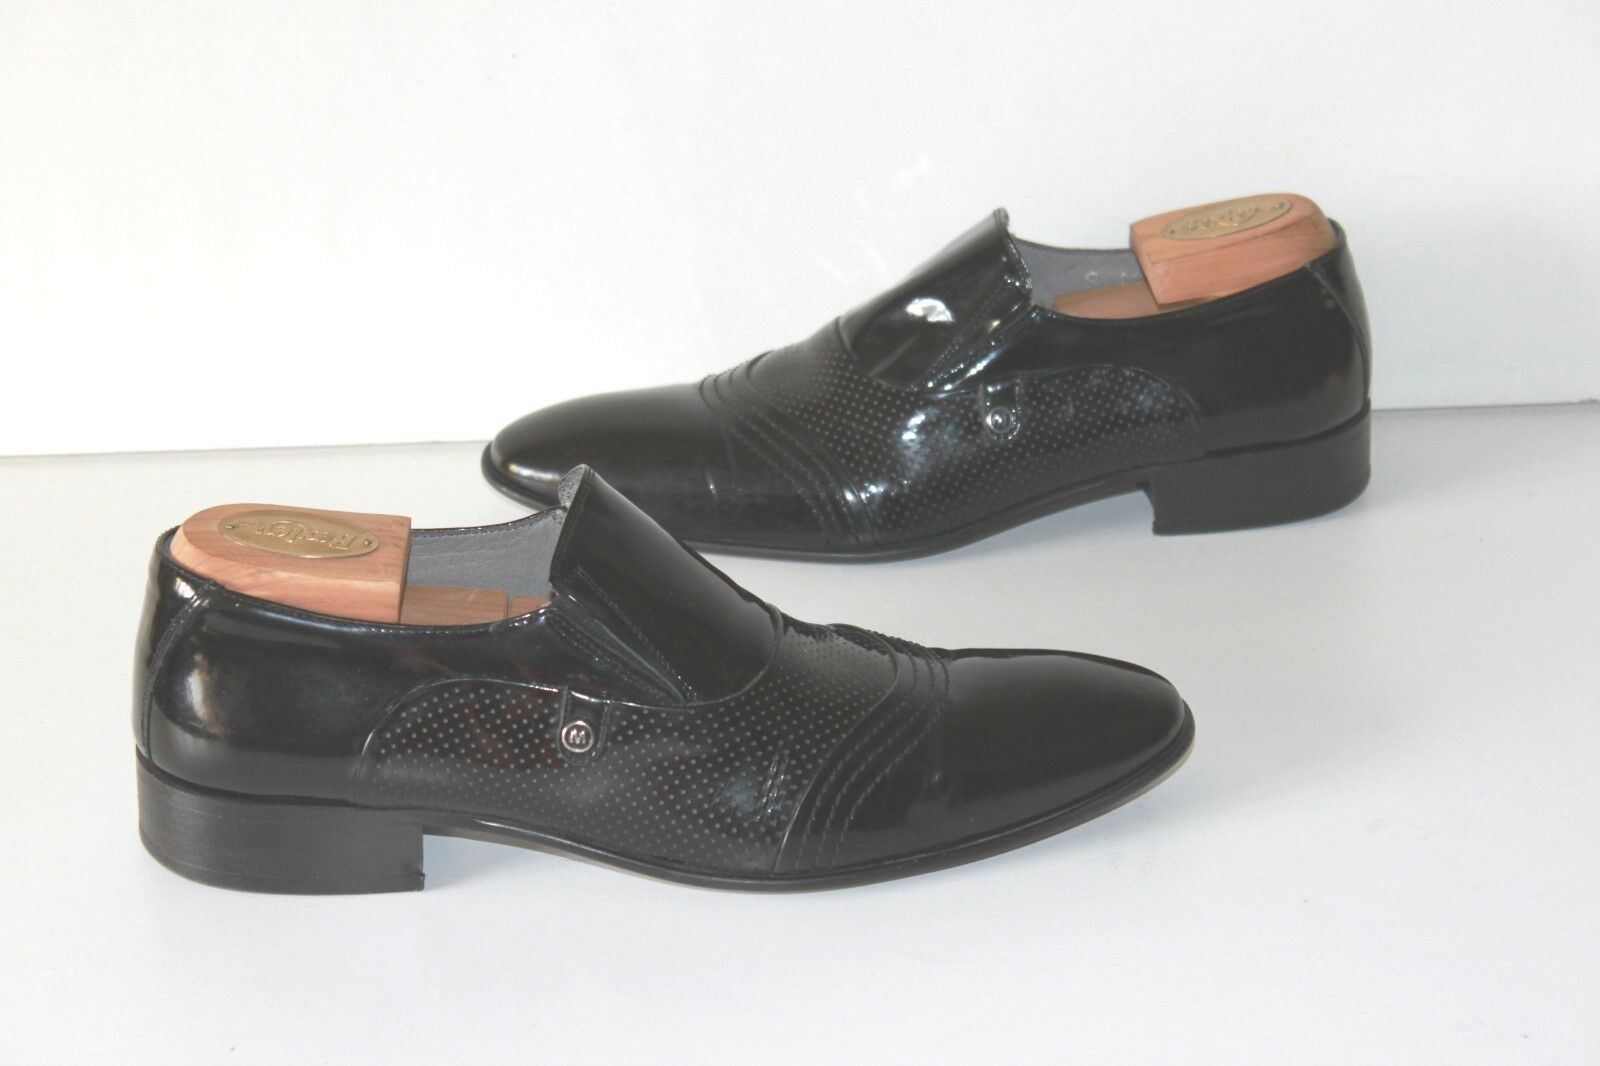 MARCOMEN Mocassin Black Patent Shoe Leather With Shoe Patent trees T 42 VERY GOOD CONDITION c665e9